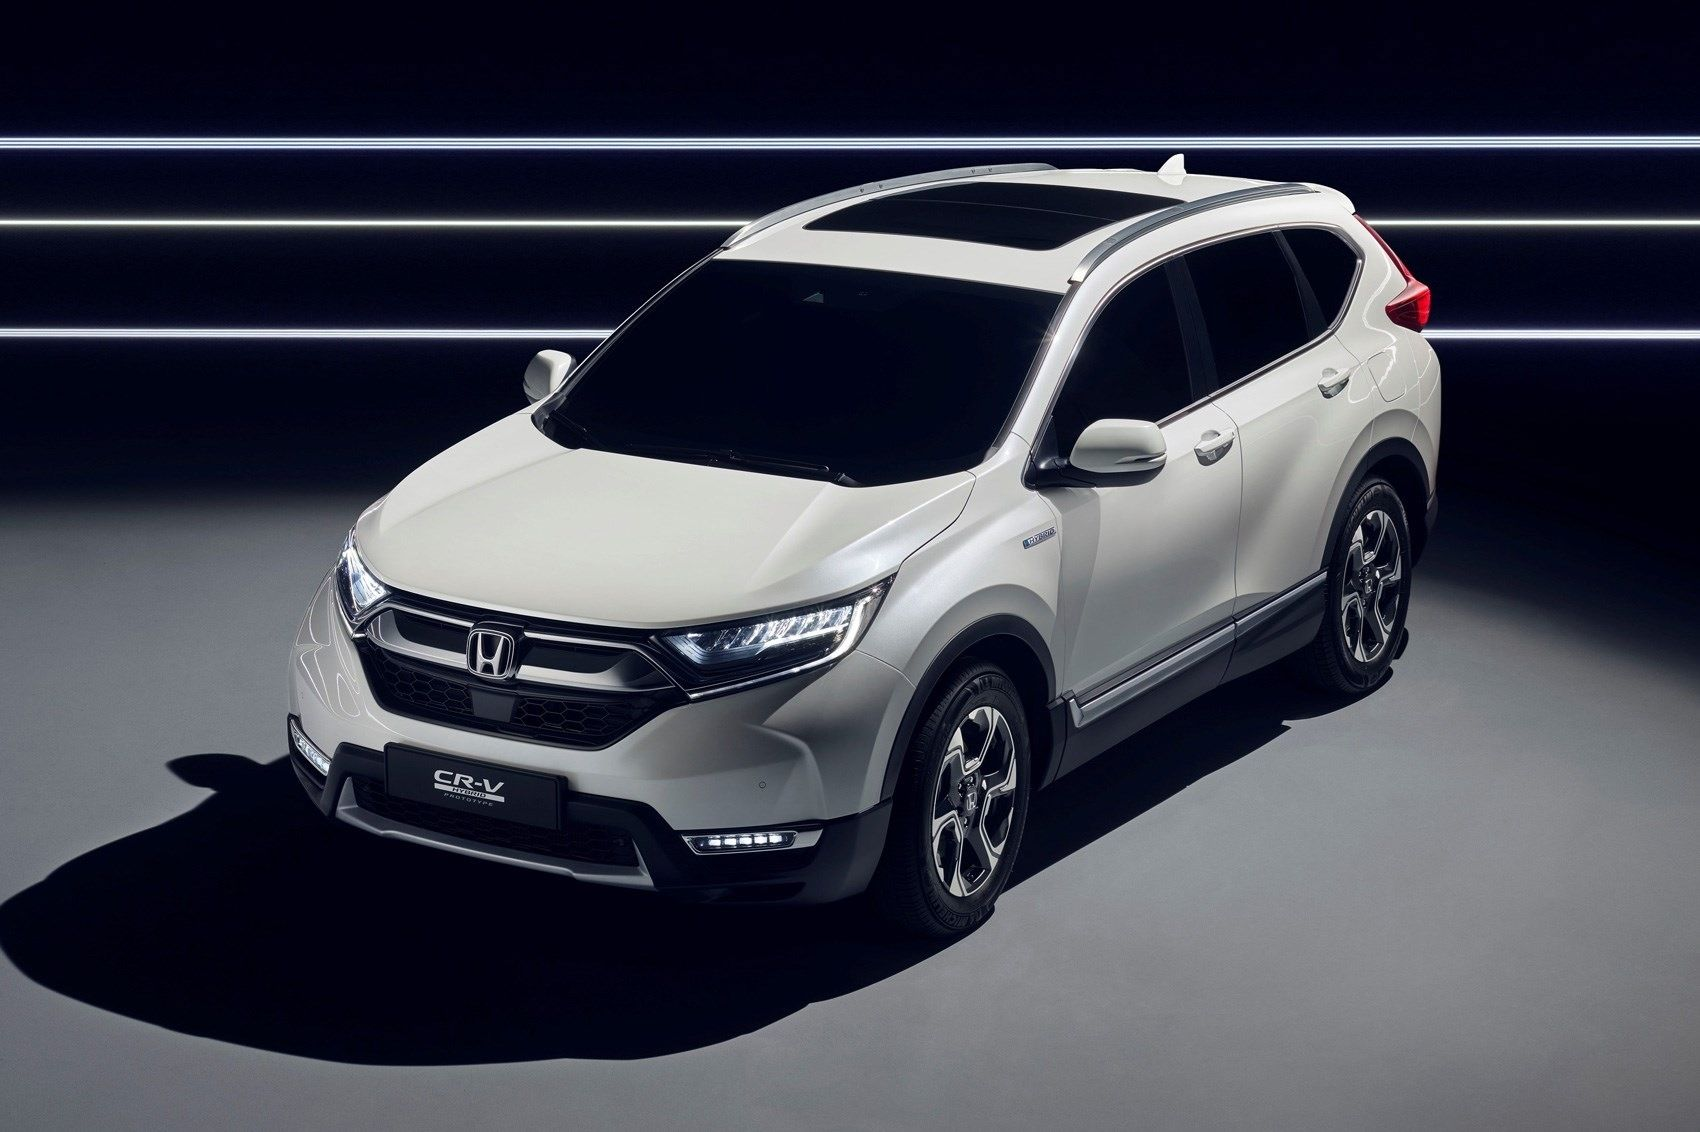 2020 Honda CrV Redesign, Changes, Release Date, Colors